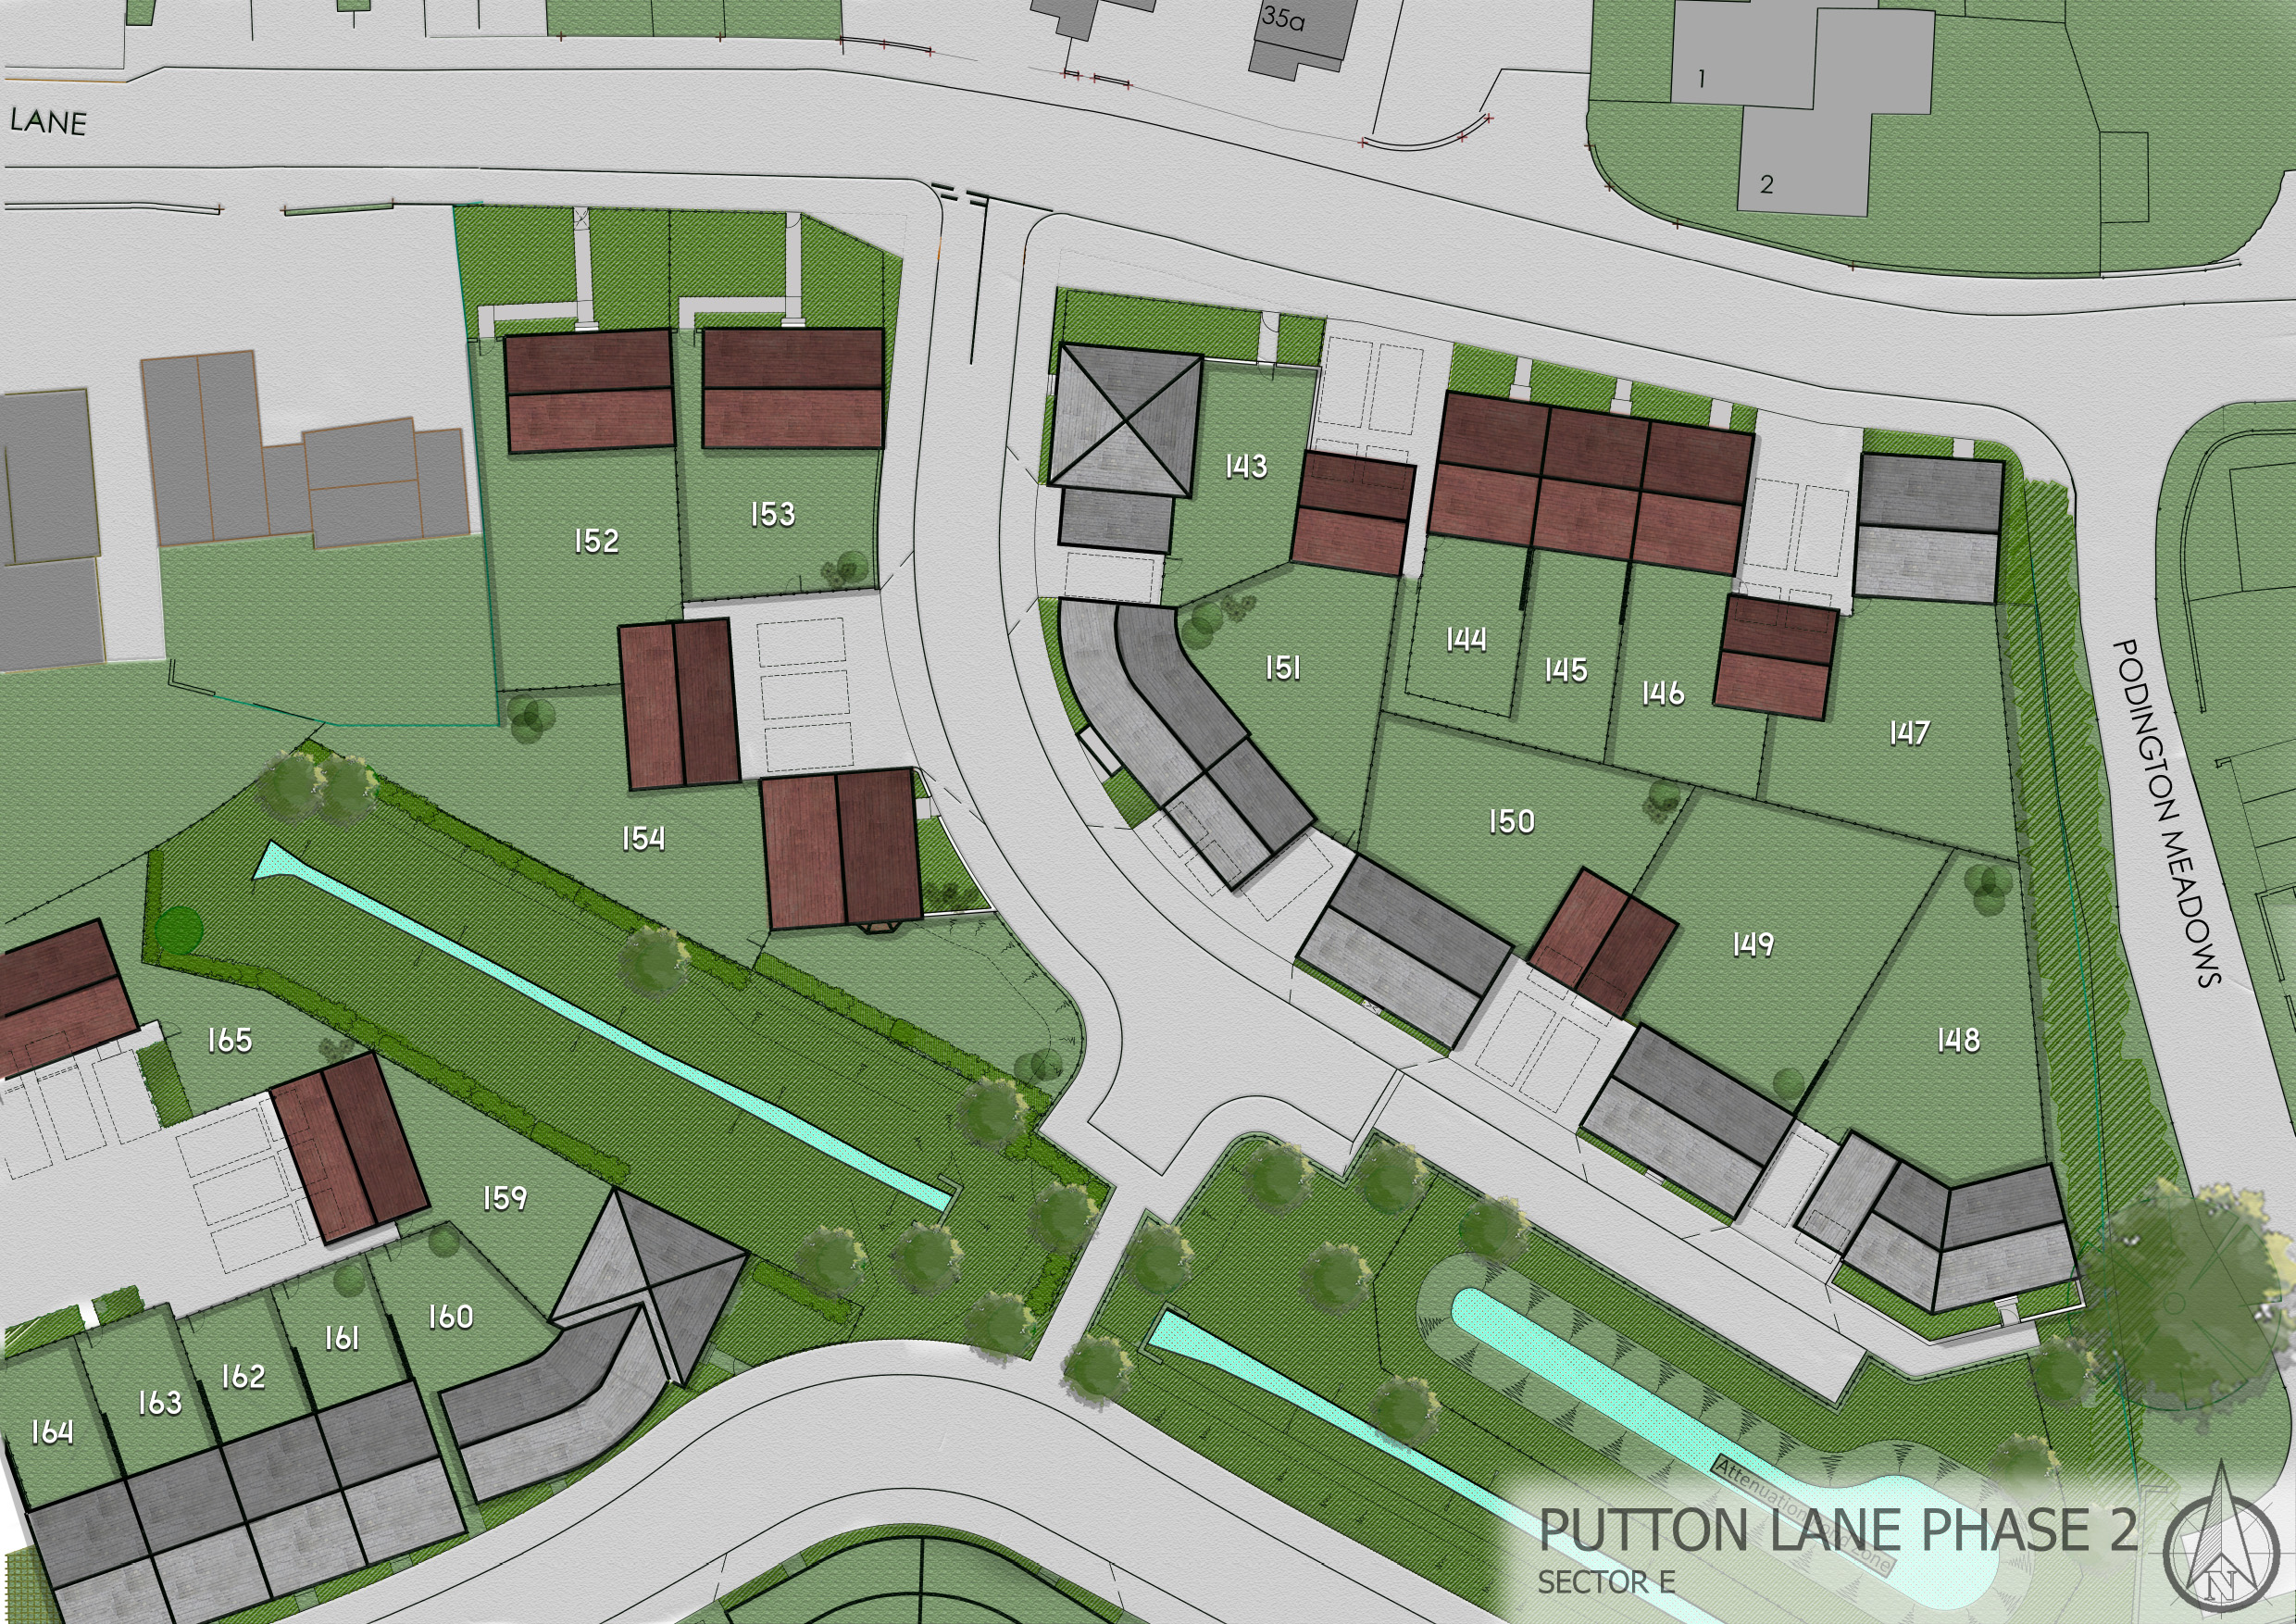 putton lane phase 2 sector E site plan